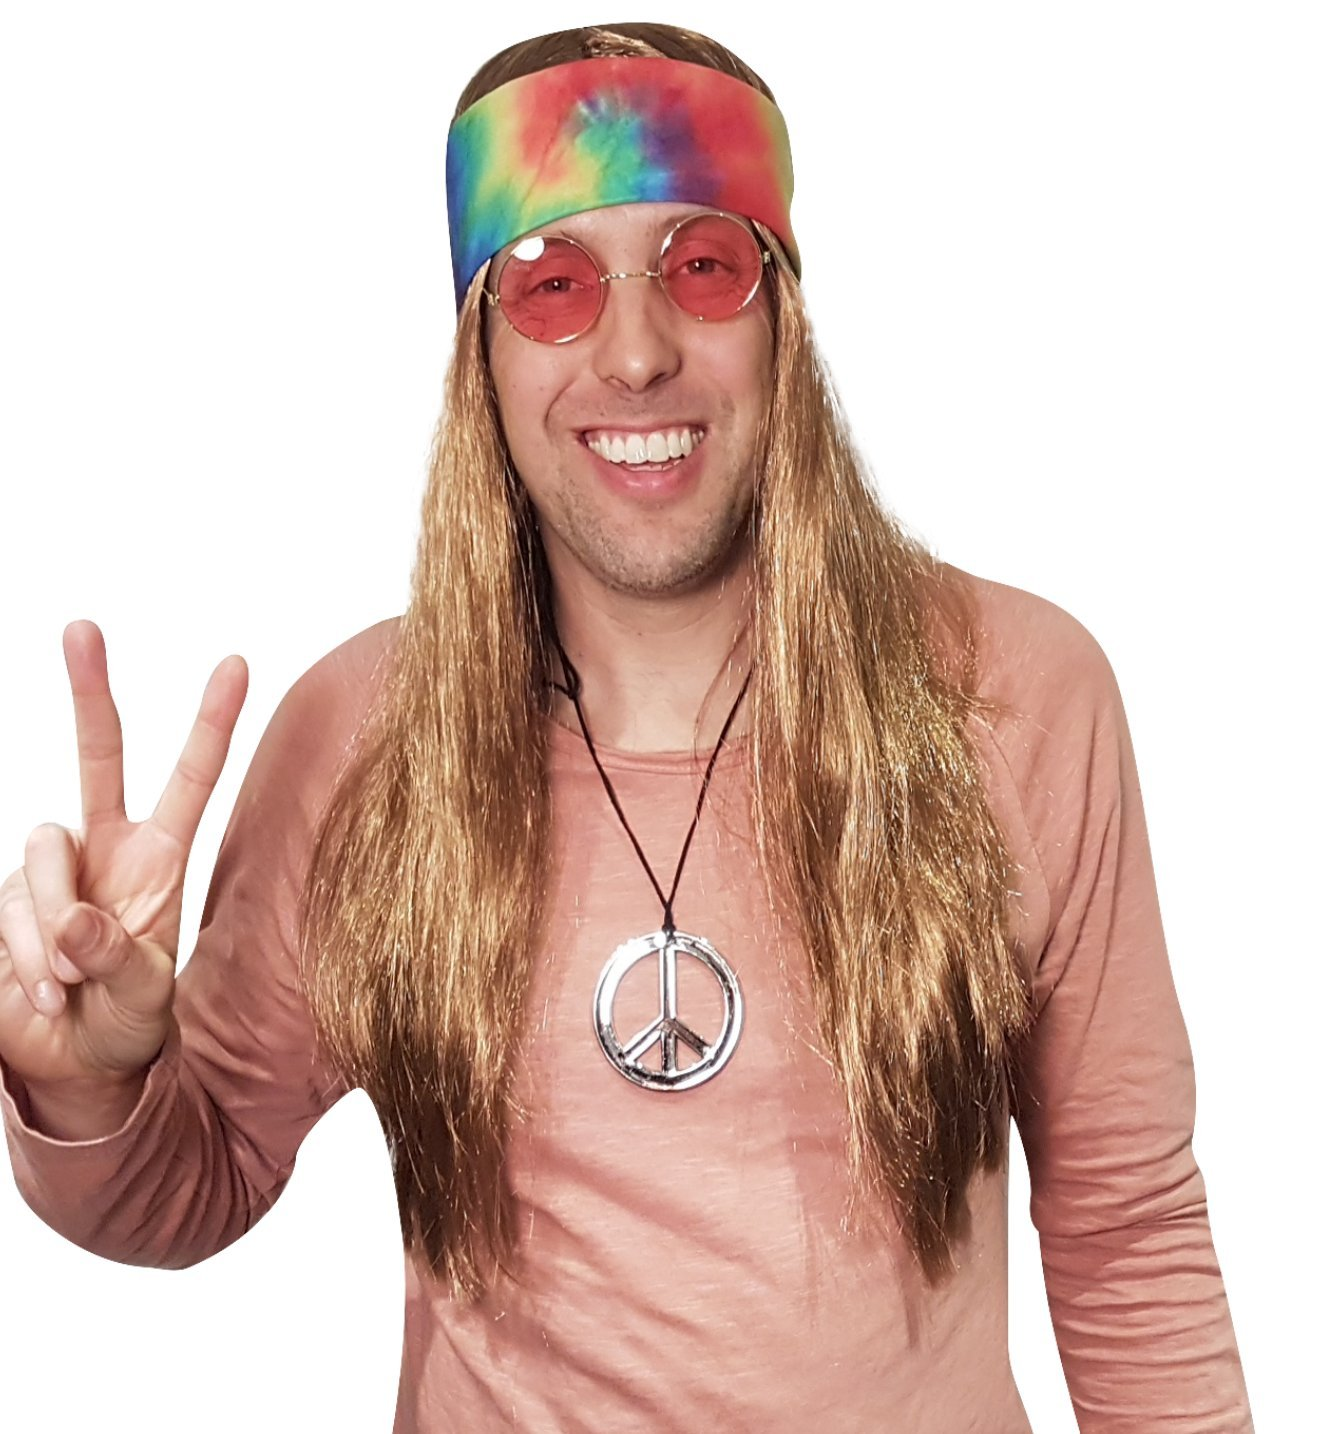 Hippie Wig Costume with Tie Dye Bandana 60s 70s Hippy Woodstock Festival Gear by Hippie Wig with Large Tie-Dyed Bandana 70's Woodstock and Motown Festival Party Costume Halloween O